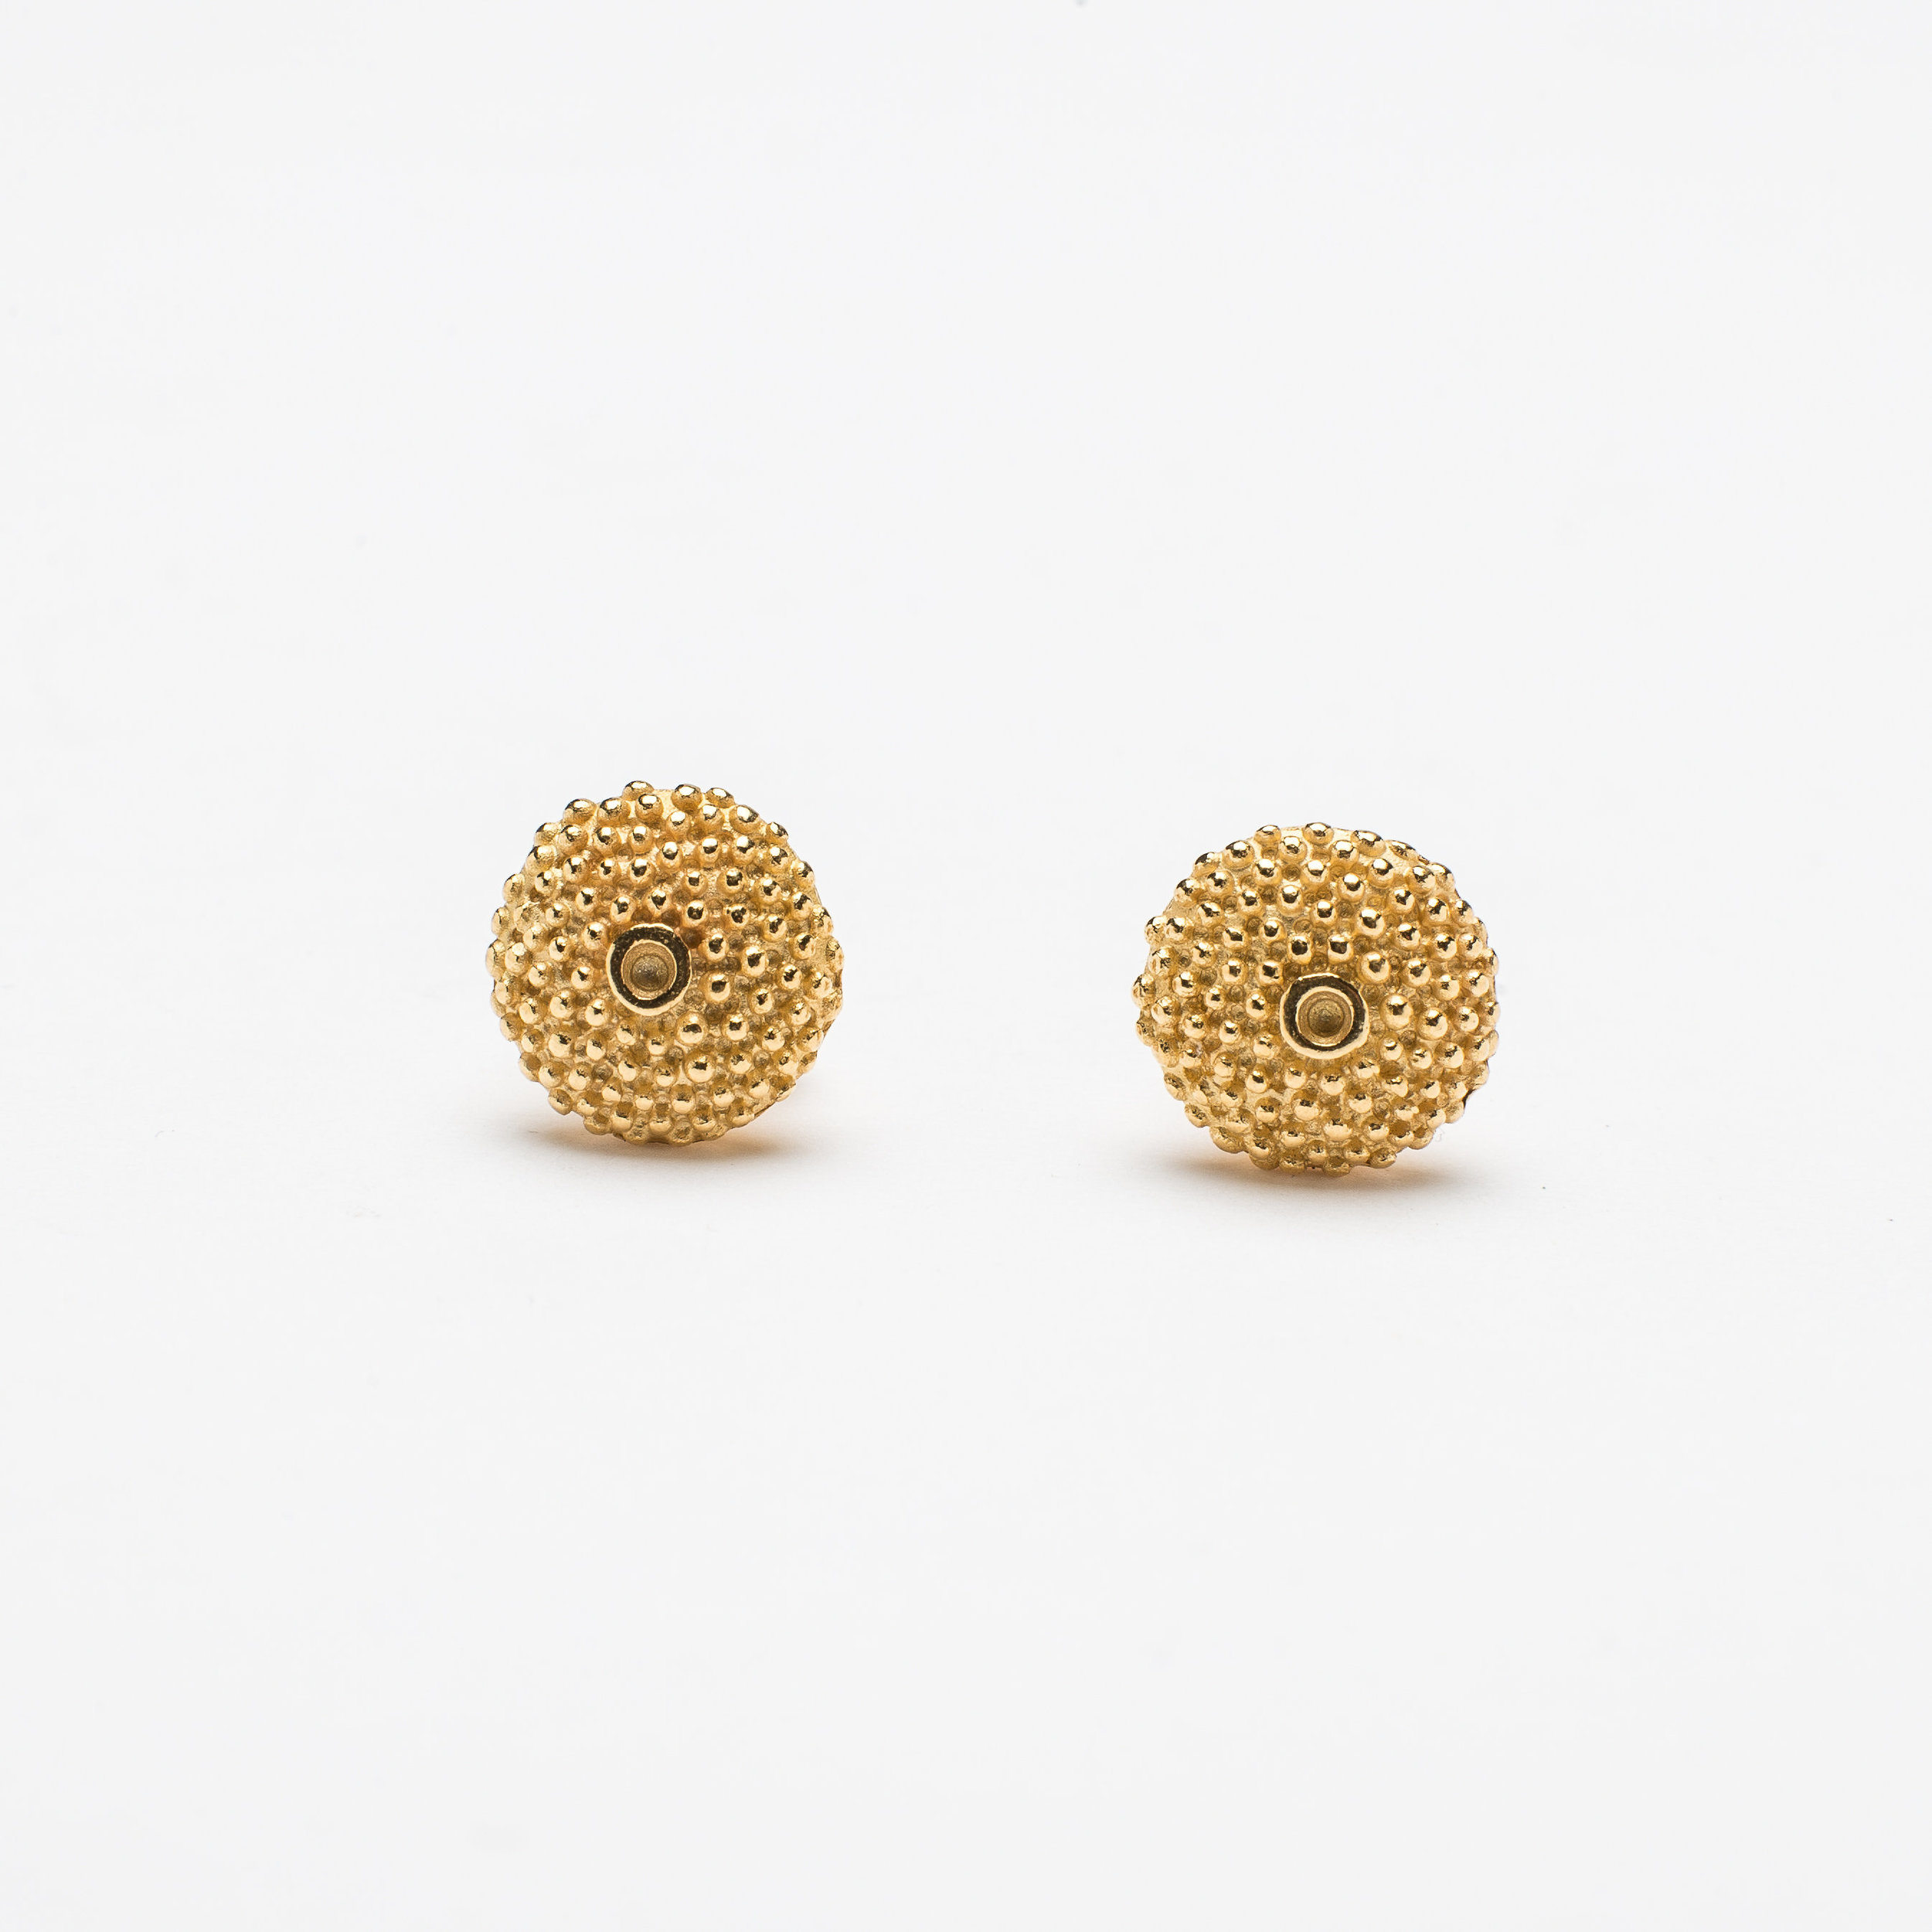 Catherine Hills Jewellery.Spot the Missing Stone Stud Earrings - Polished 22ct Gold Plated Silver  .jpg